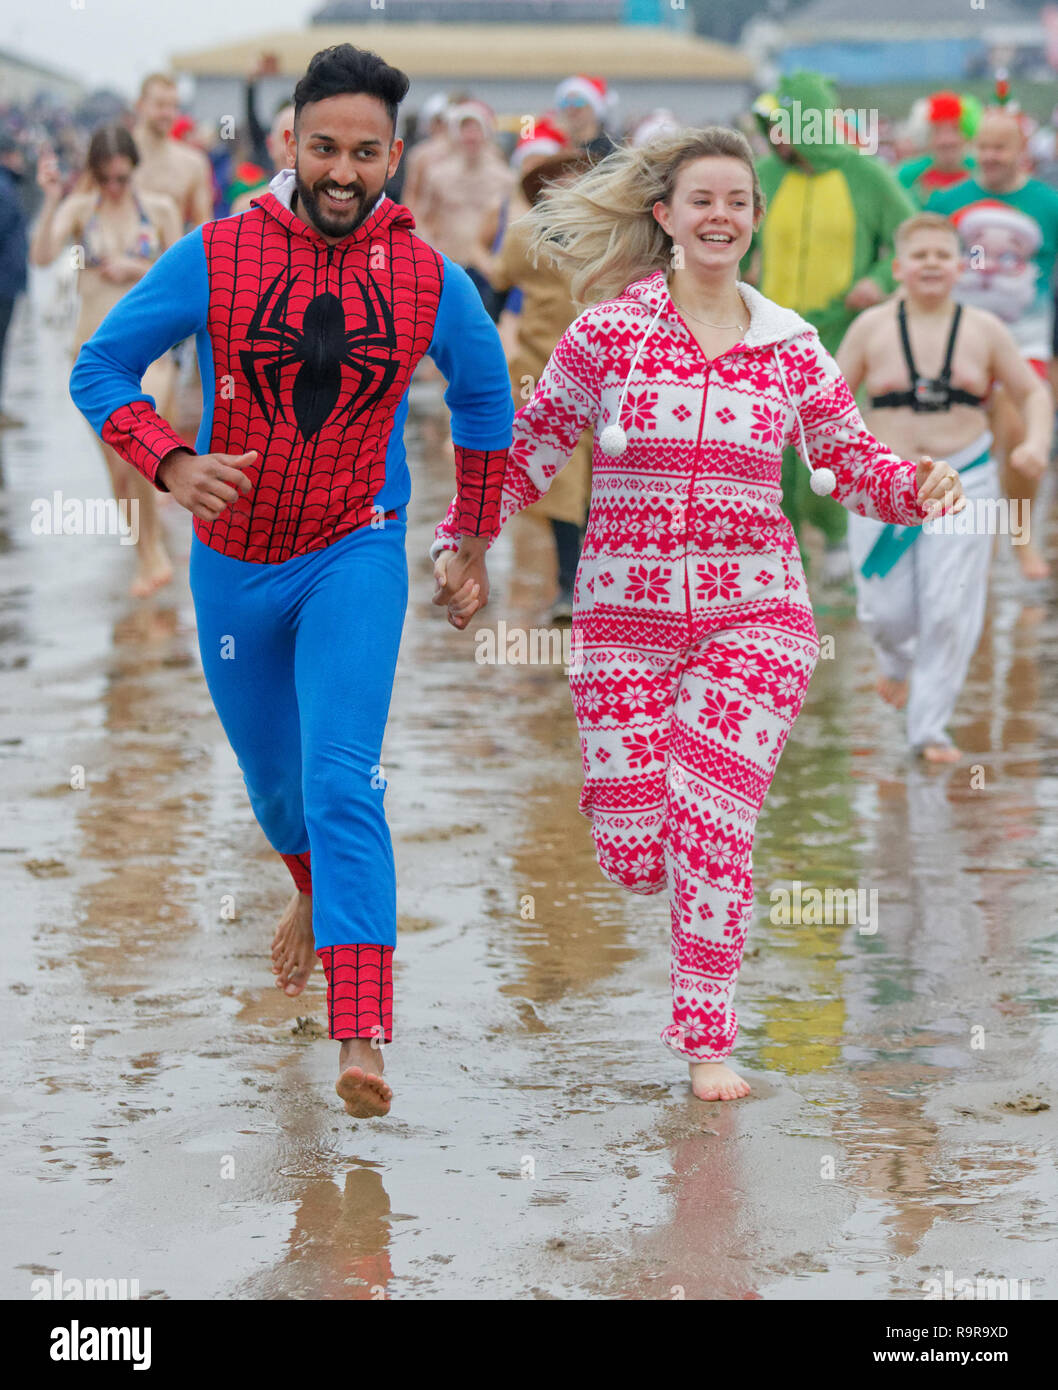 Pictured: A man dressed as Spiderman and a young woman in a festive onesie, run to the sea. Tuesday 25 December 2018 Re: Hundreds of people take part  Stock Photo